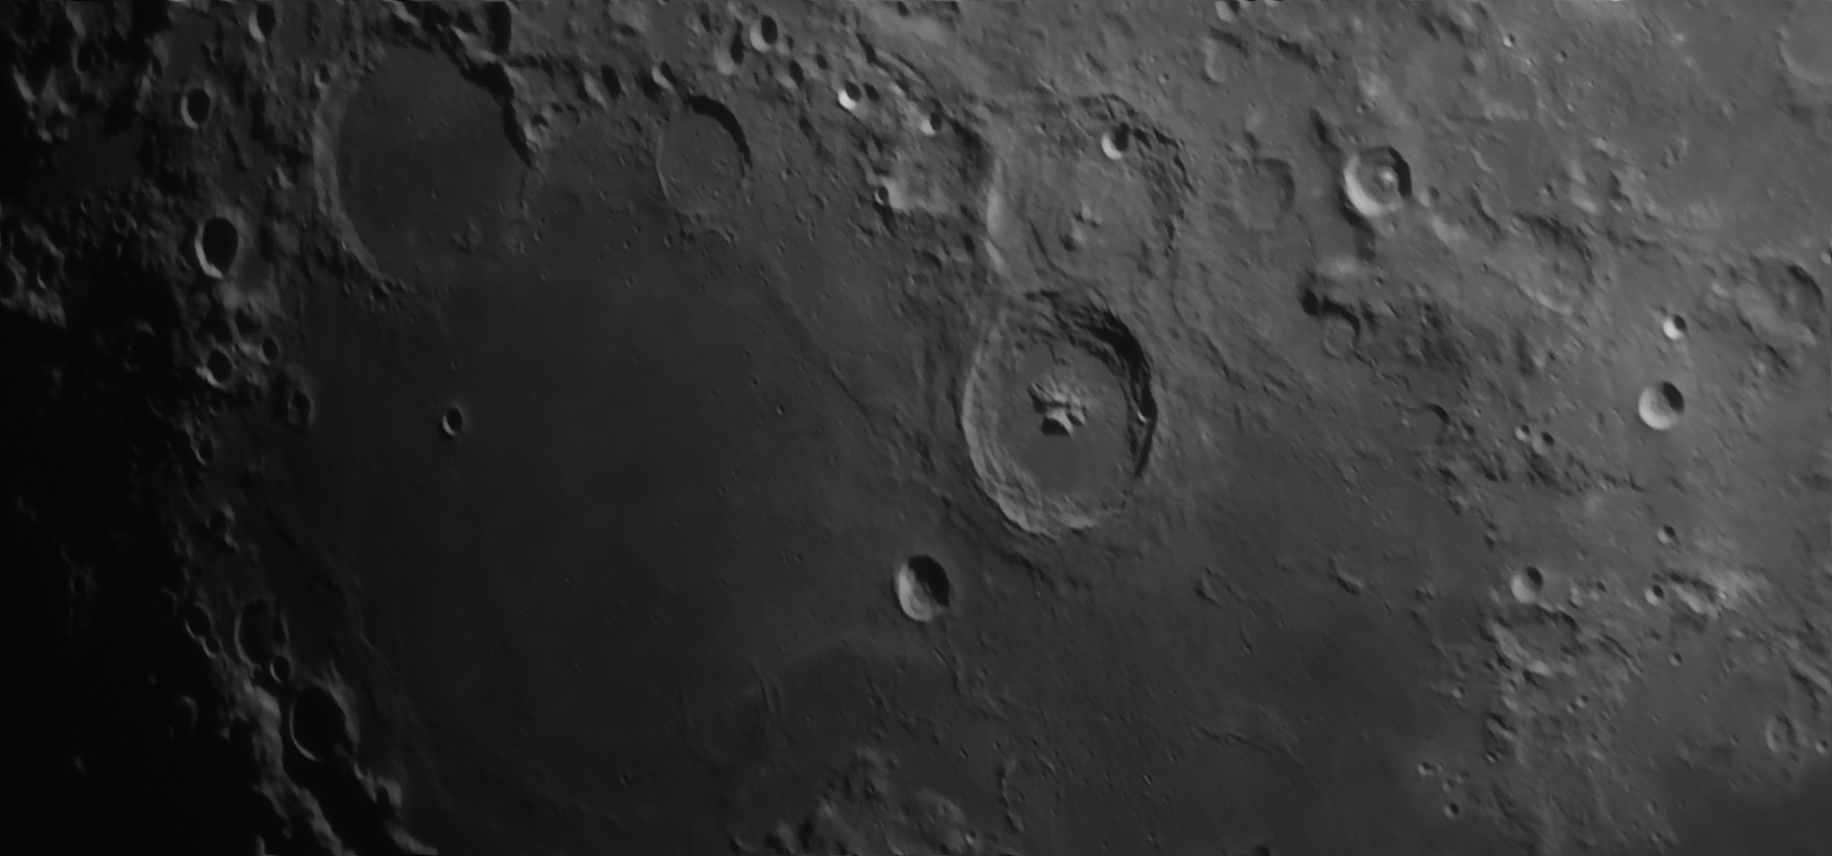 5f2e5de06eac1_Planlunaire2.png.a3f1a70a354d279fccfcc990a77bf17a.png